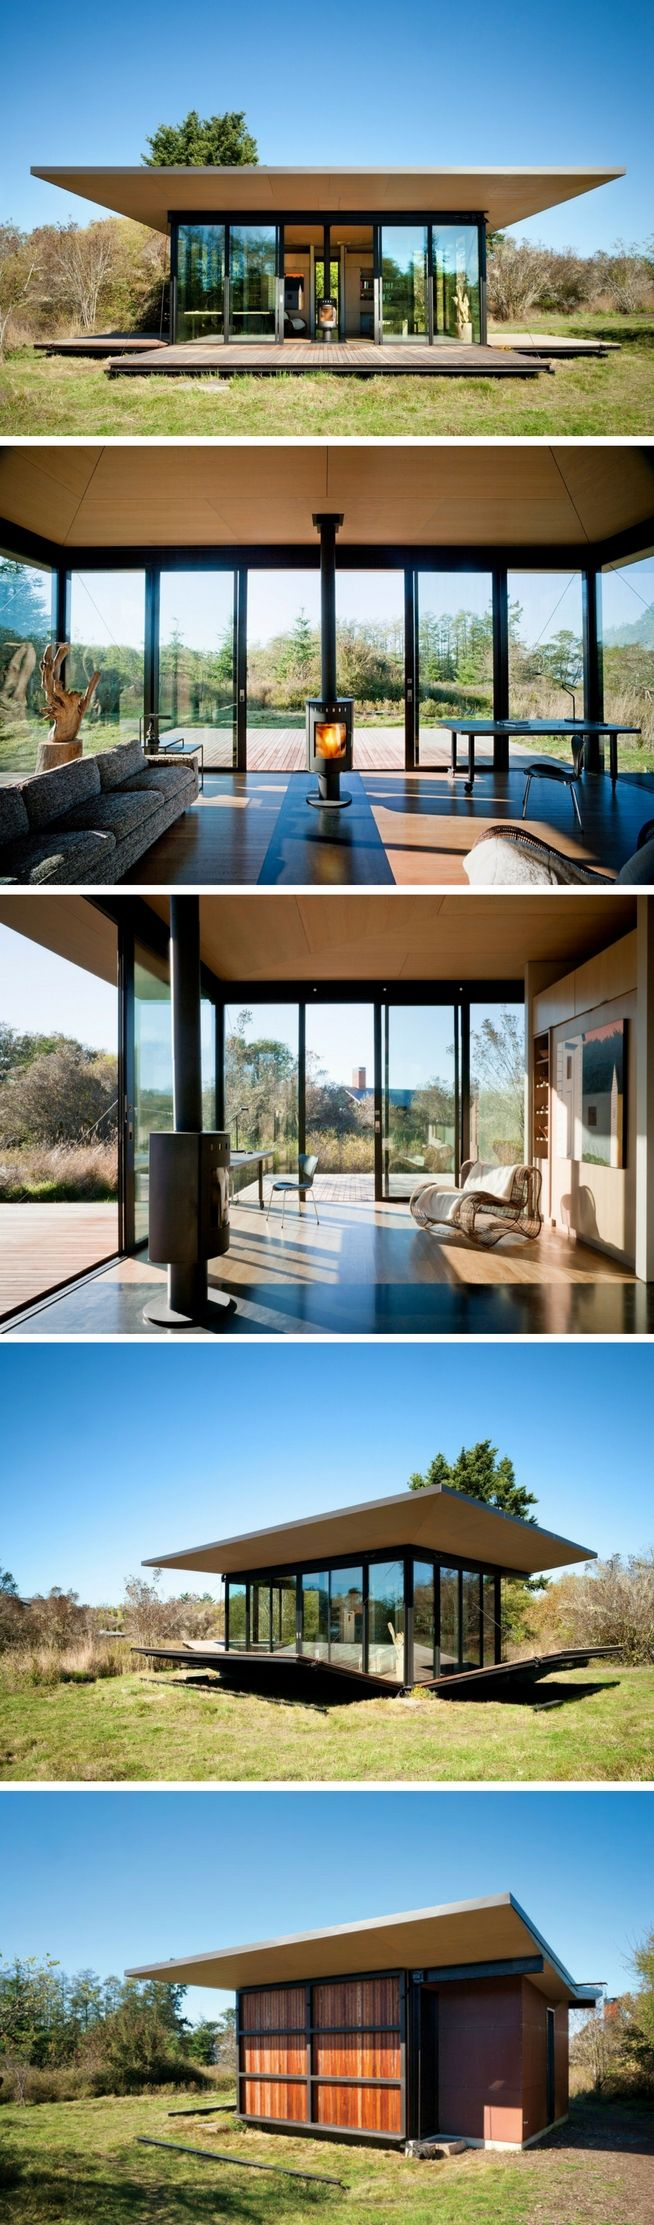 The False Bay Writer's Retreat. A stunning, modern cabin with a unique design that allows the home's wrap-around porch to be raised against the home to allow for privacy.